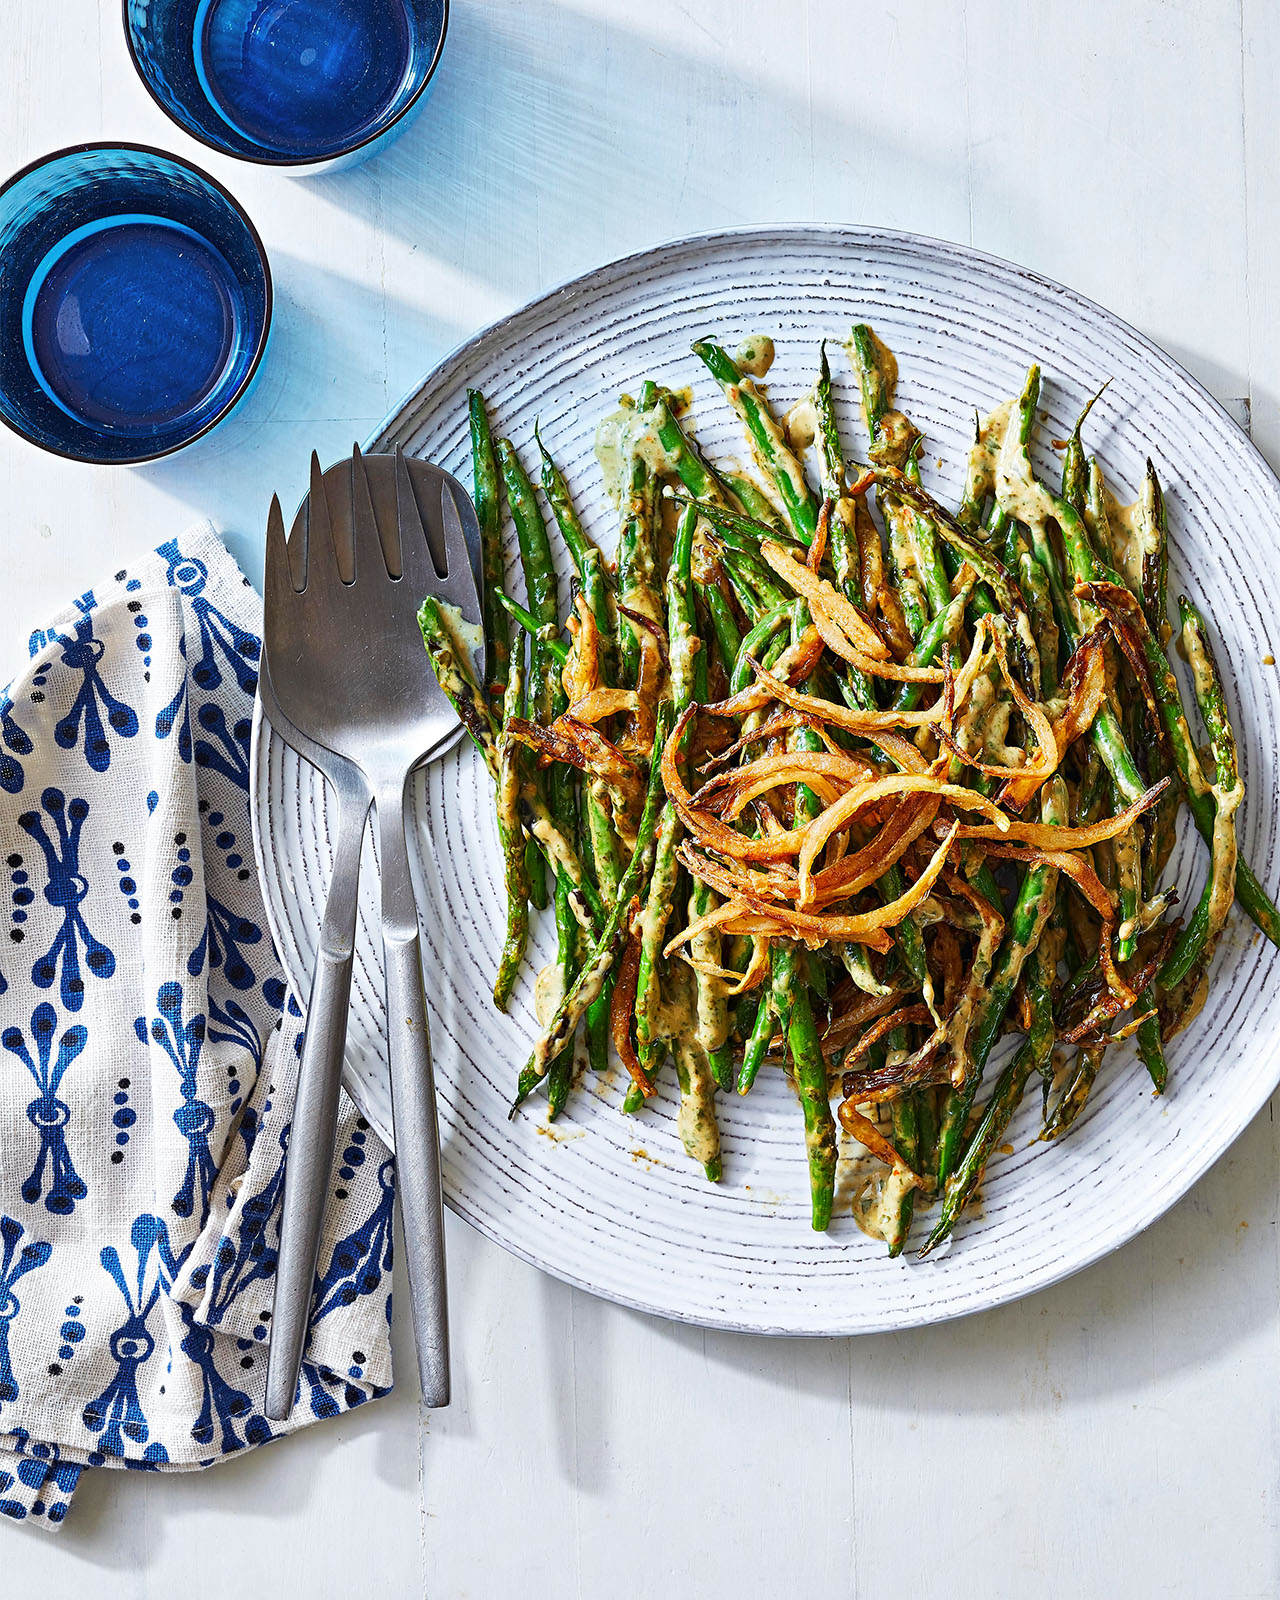 Blistered Green Beans with Fried Onions and Basil-Mushroom Cream